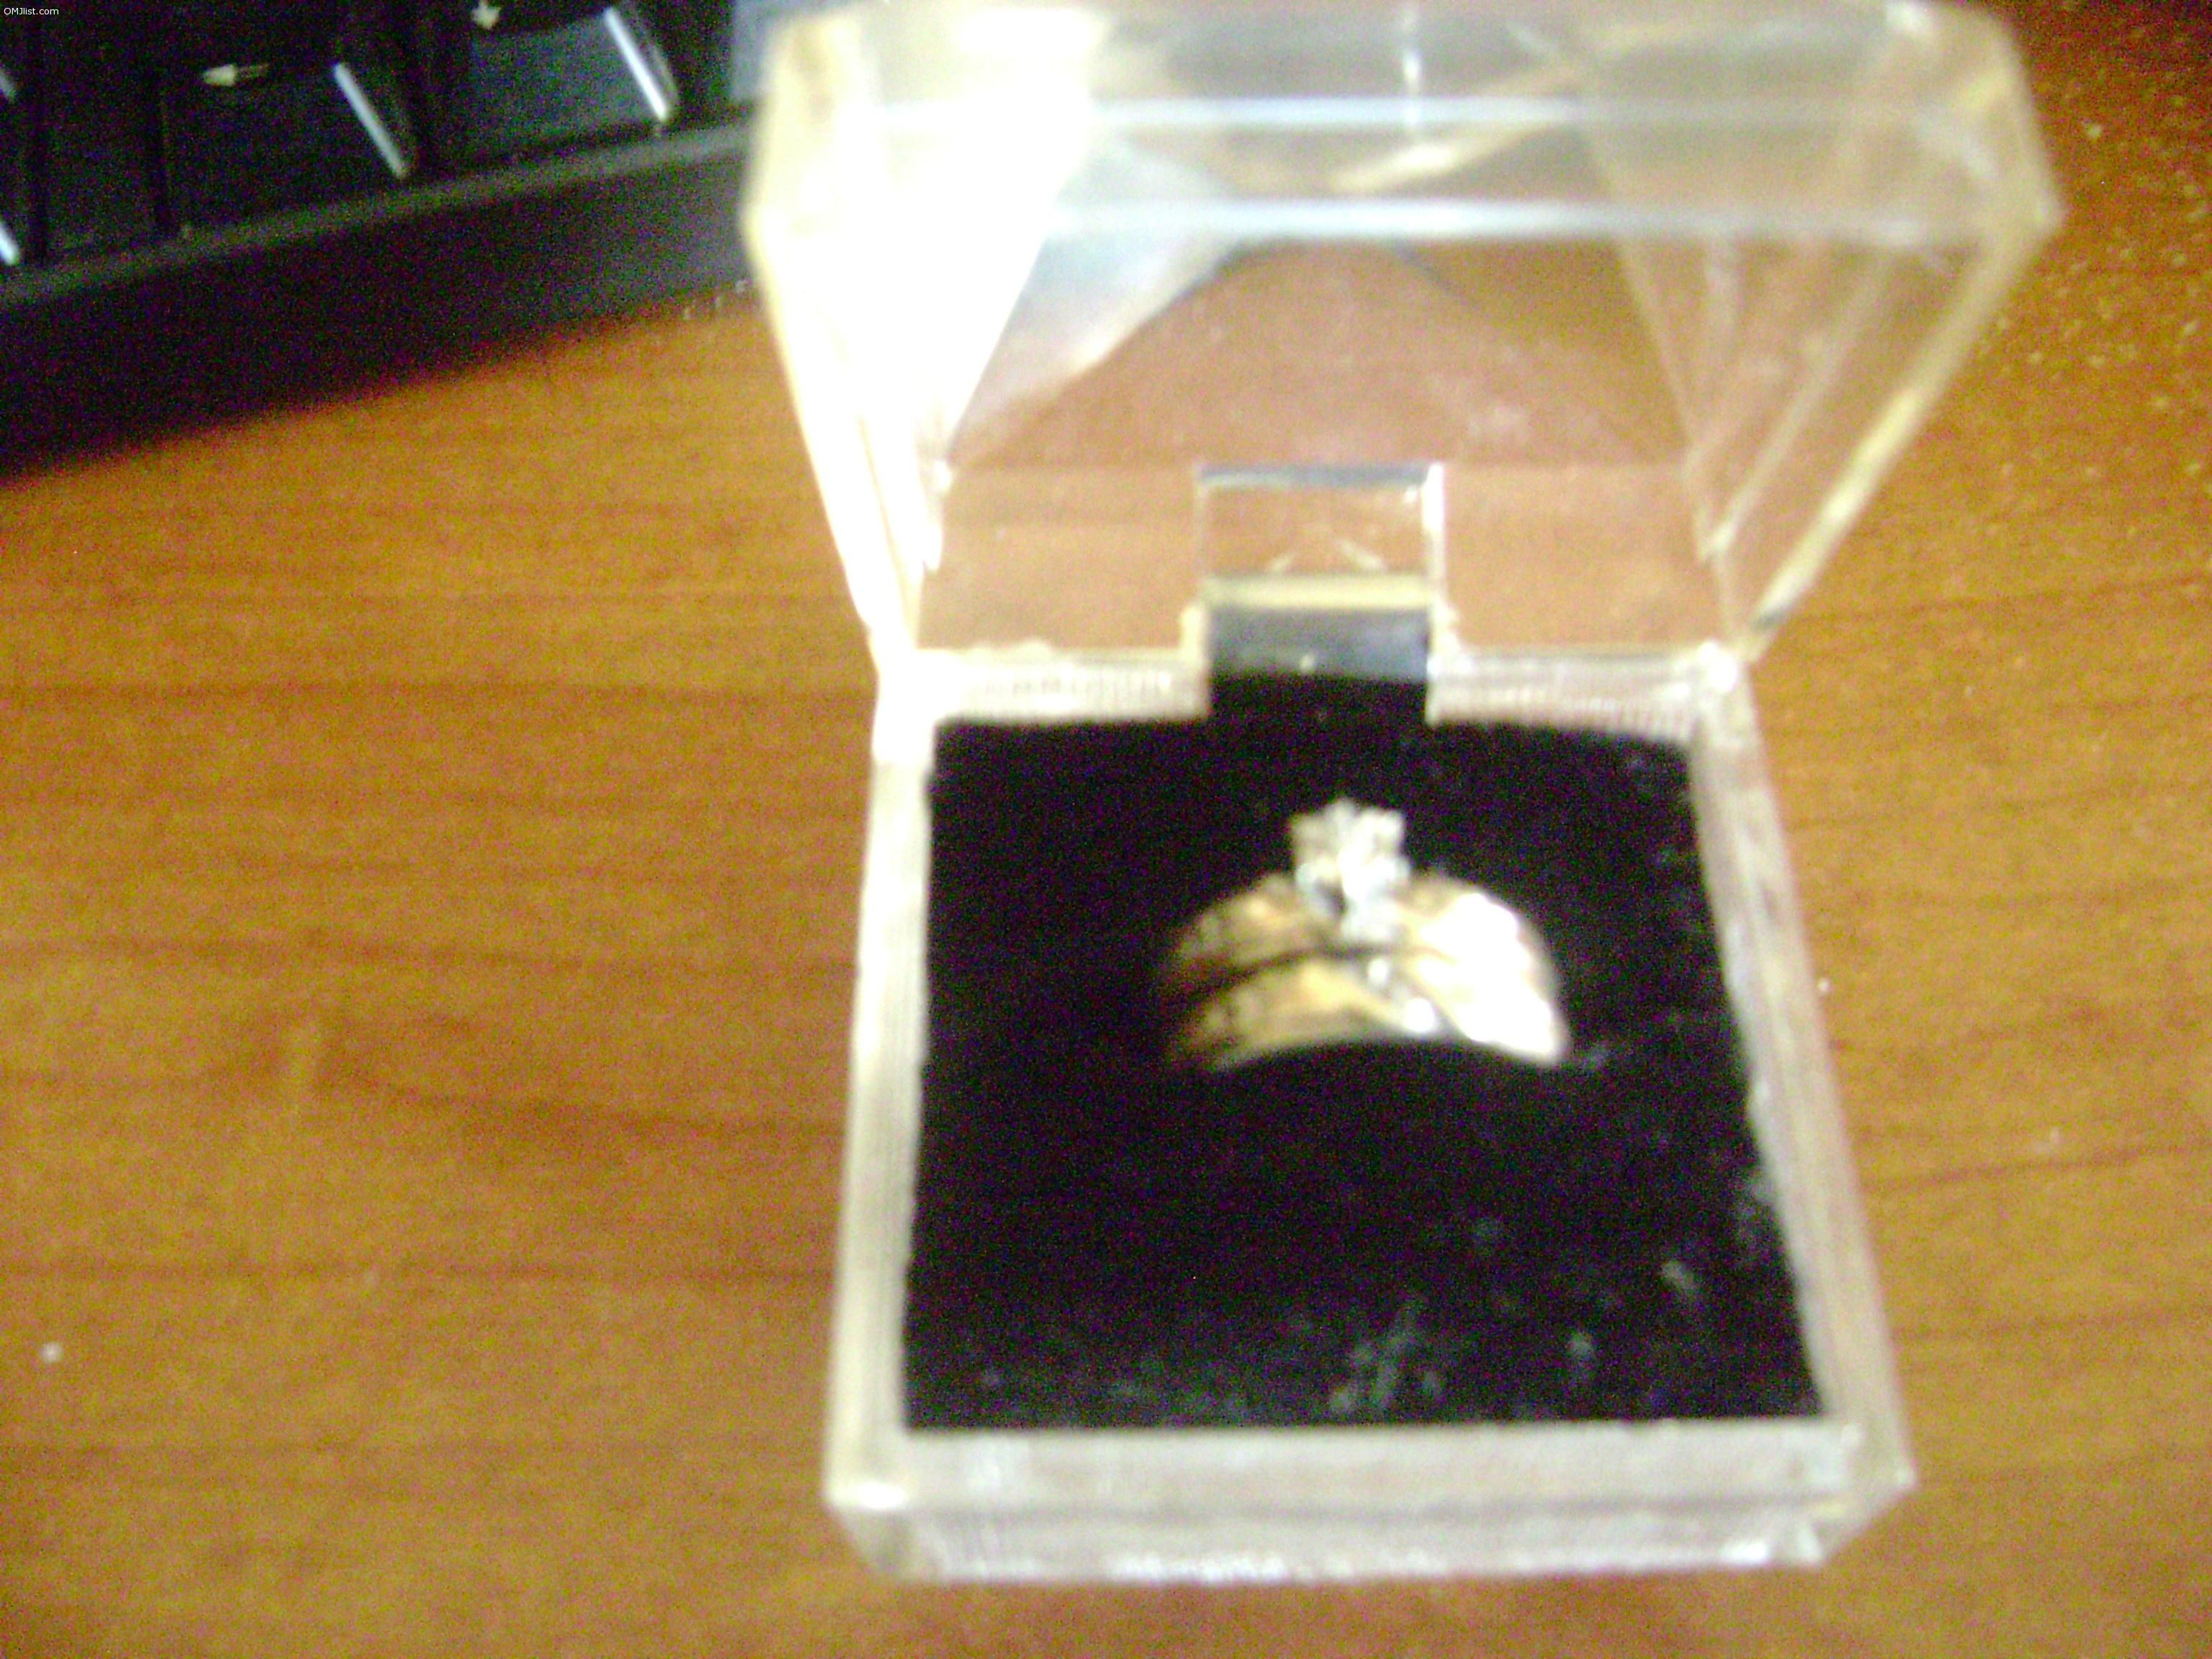 i need to sell my wedding ring setdiamond is small nice set - Sell My Wedding Ring